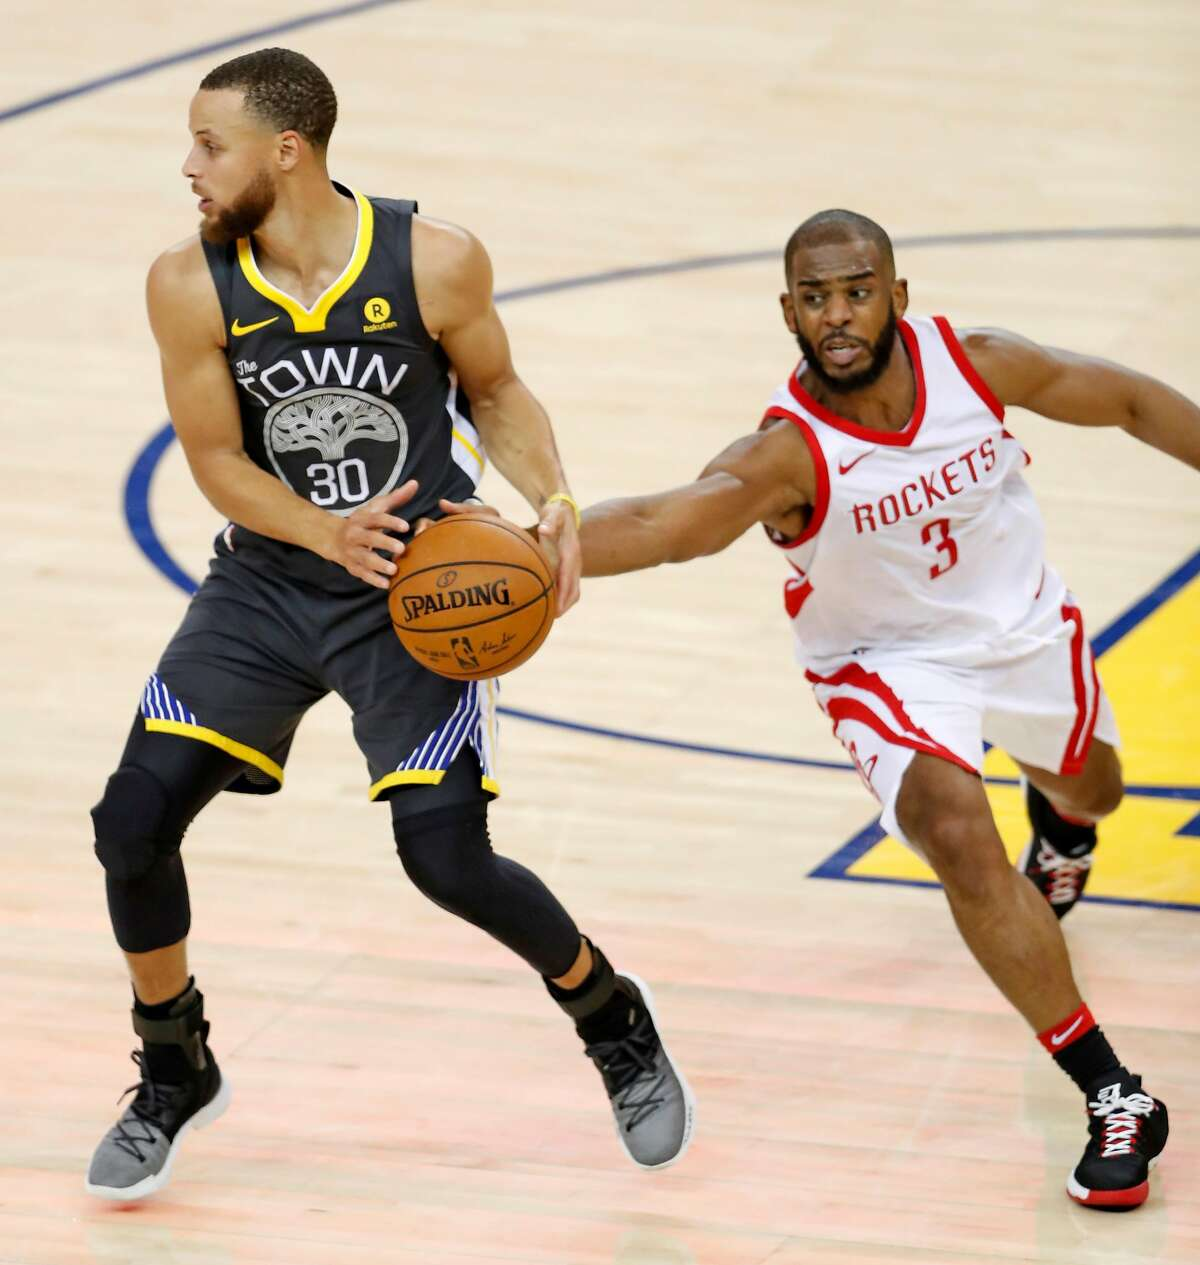 Houston Rockets' Chris Paul tries to steal the ball from Stephen Curry in 2nd quarter of Houston's 95-92 win during Game 4 of NBA Western Conference Finals at Oracle Arena in Oakland, CA on Tuesday, May 22, 2018.